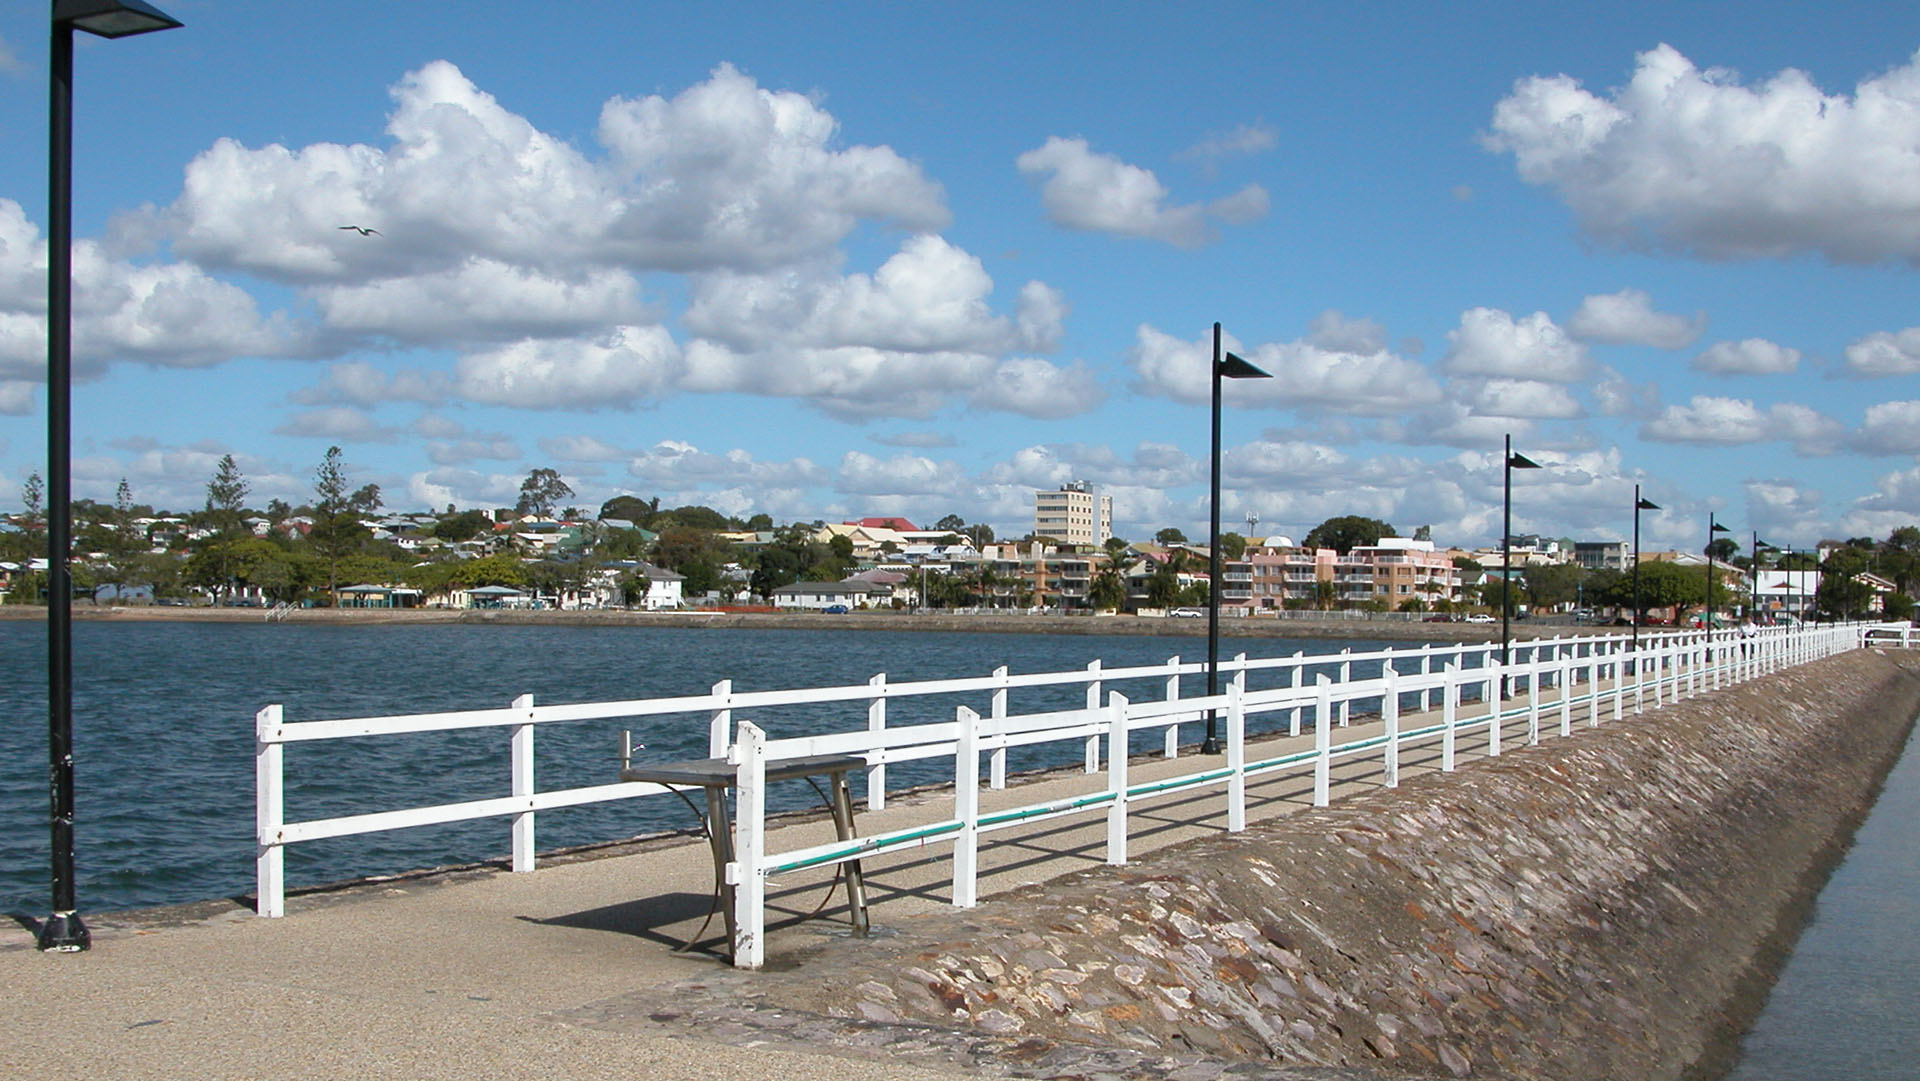 This long quiet jetty at Wynnum, Brisbane, Queensland, Australia is decorated with mosaic telling lore of the local Aboriginal people.